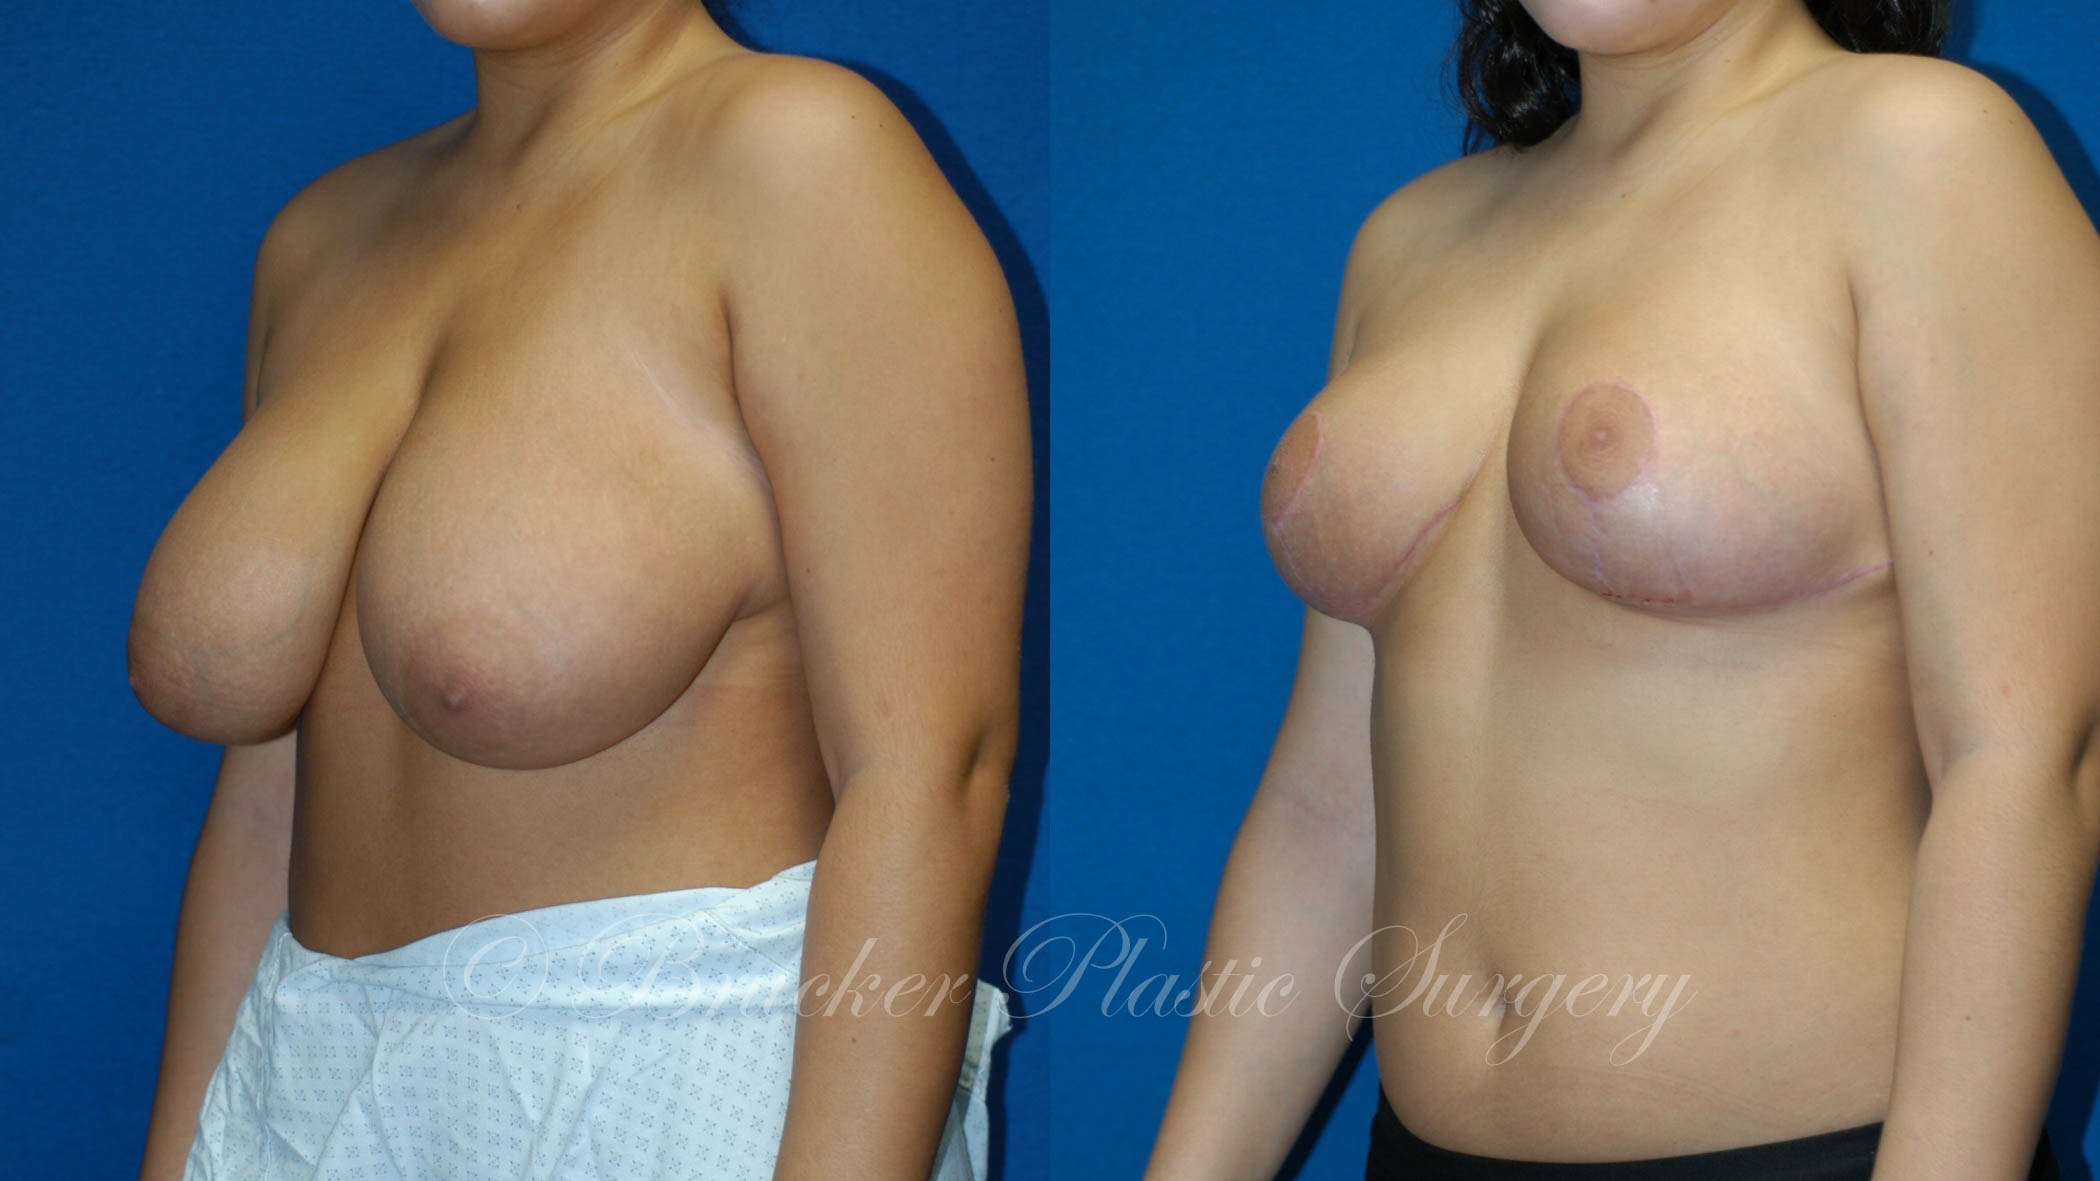 Breast Reduction La Jolla Patient 1.2